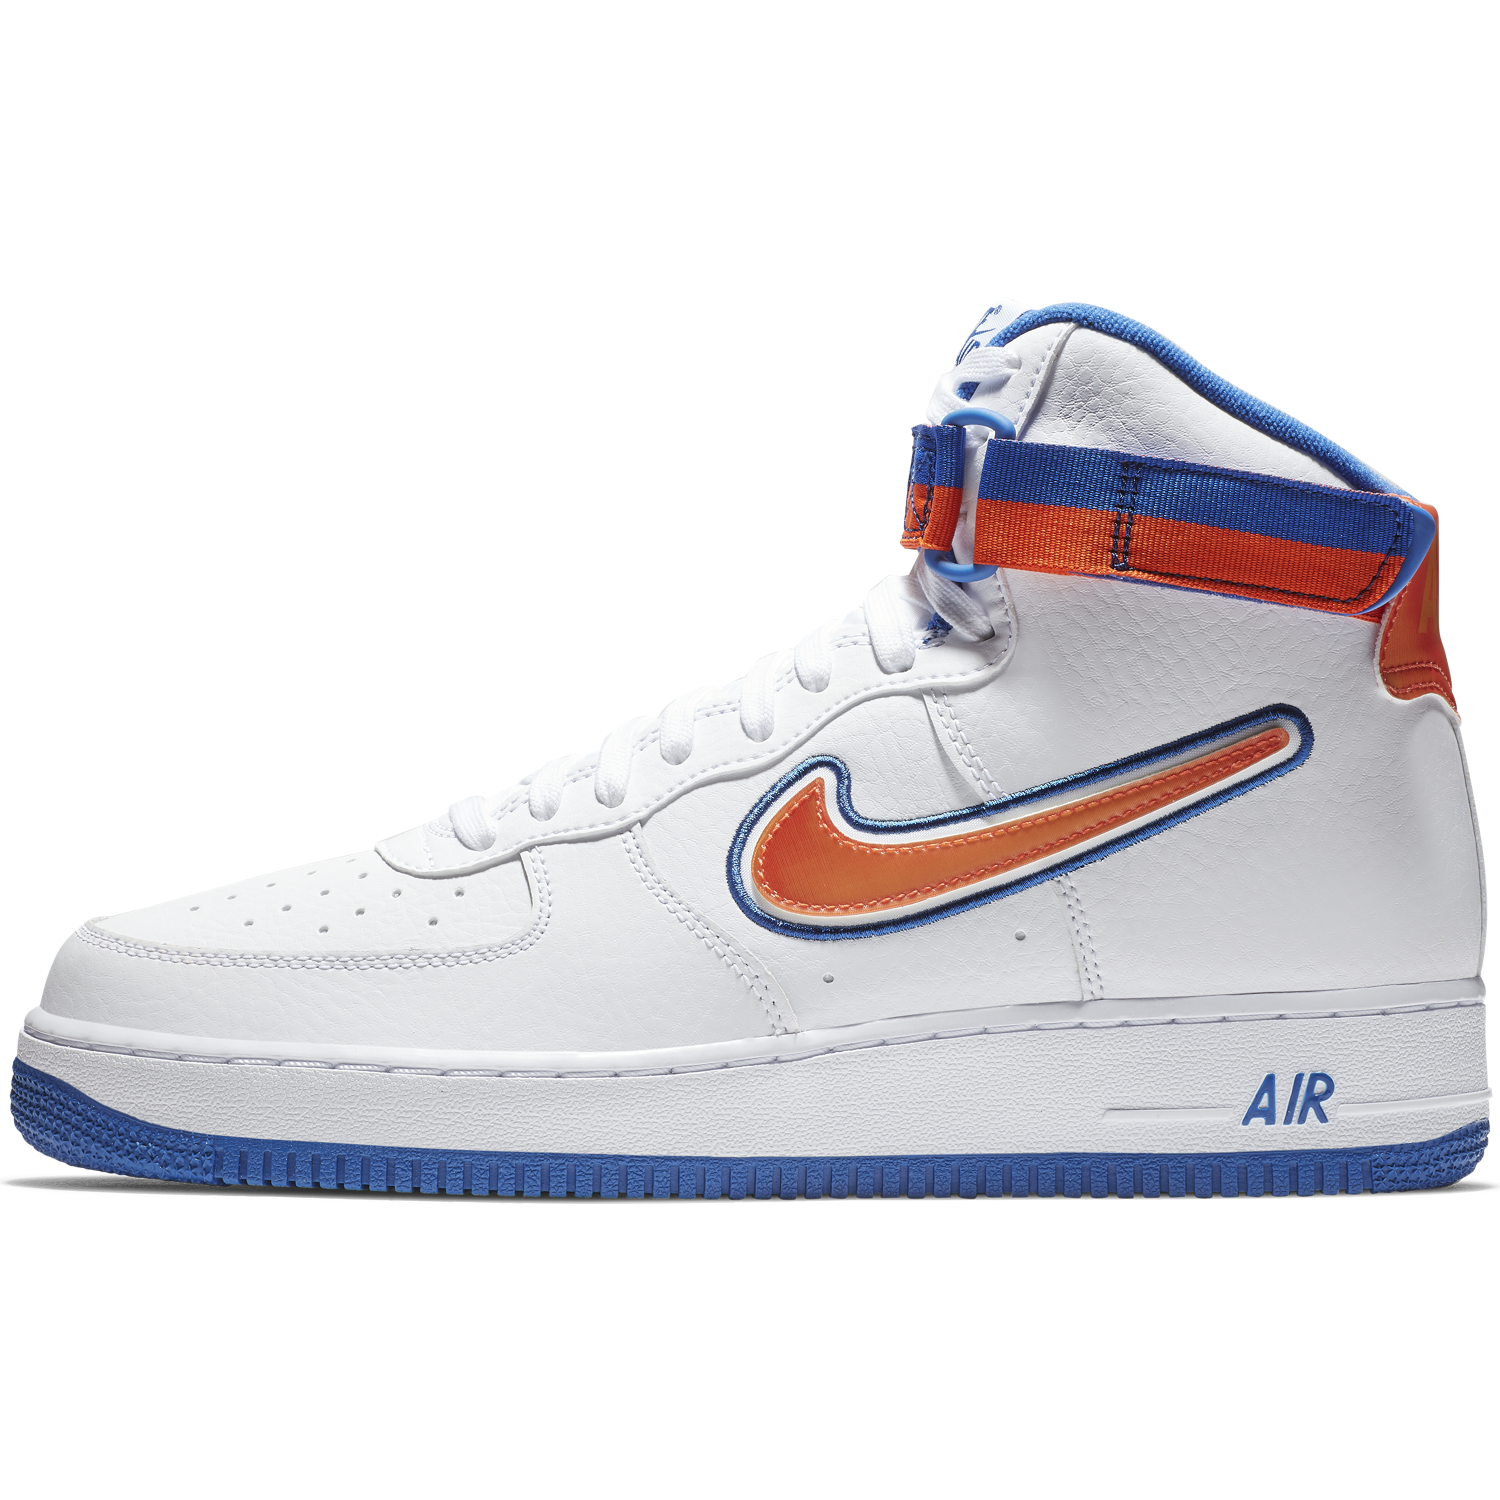 NIKE AIR FORCE 1 HIGH 07 LV8 SPORT AV3938-100